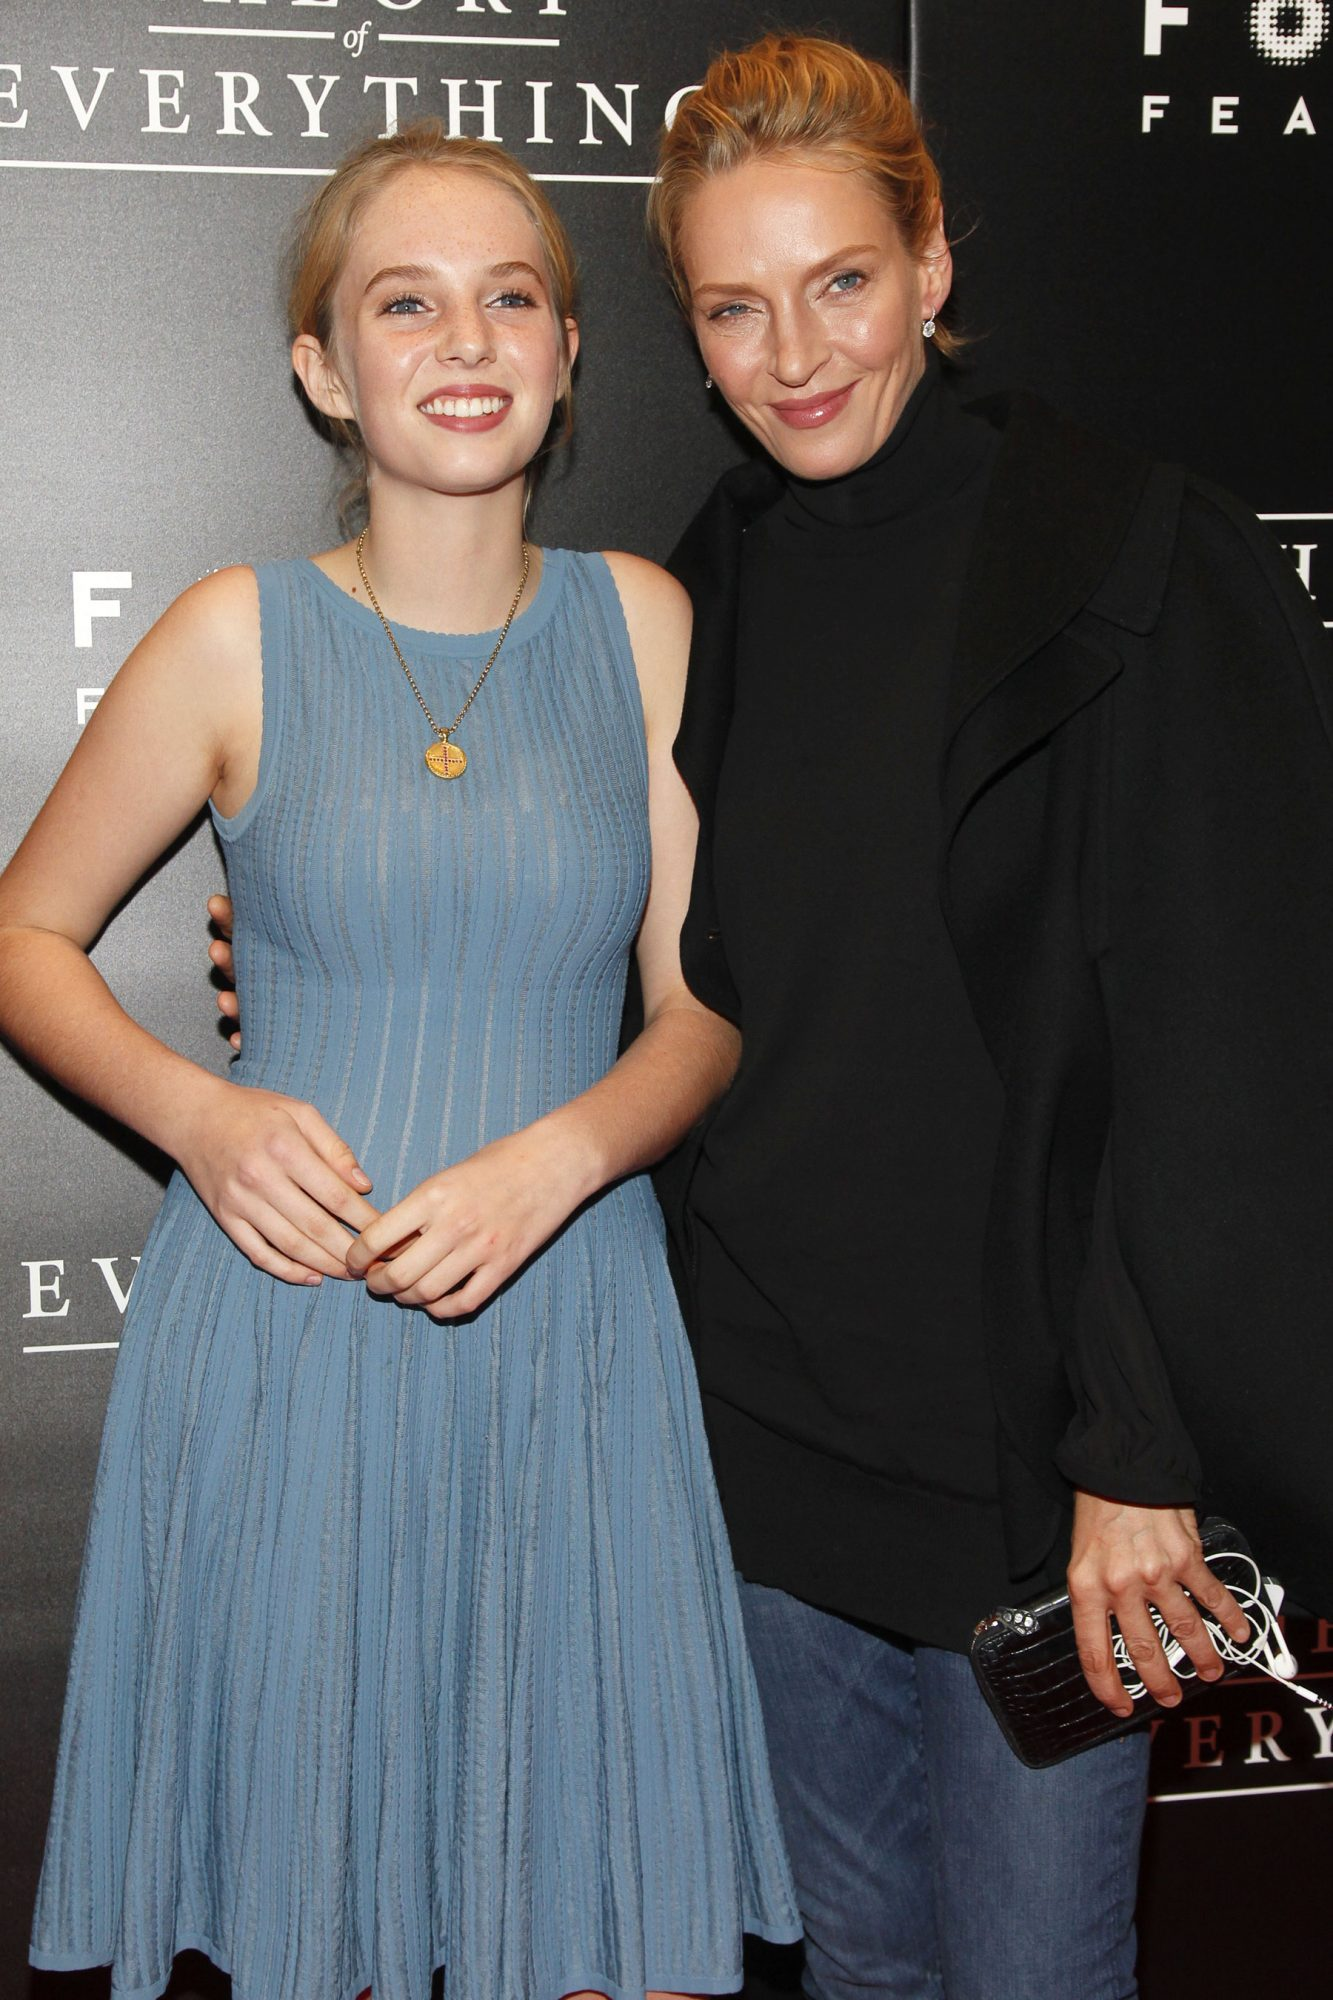 """NY Premiere of """"The Theory Of Everything"""", New York, USA - 20 Oct 2014"""